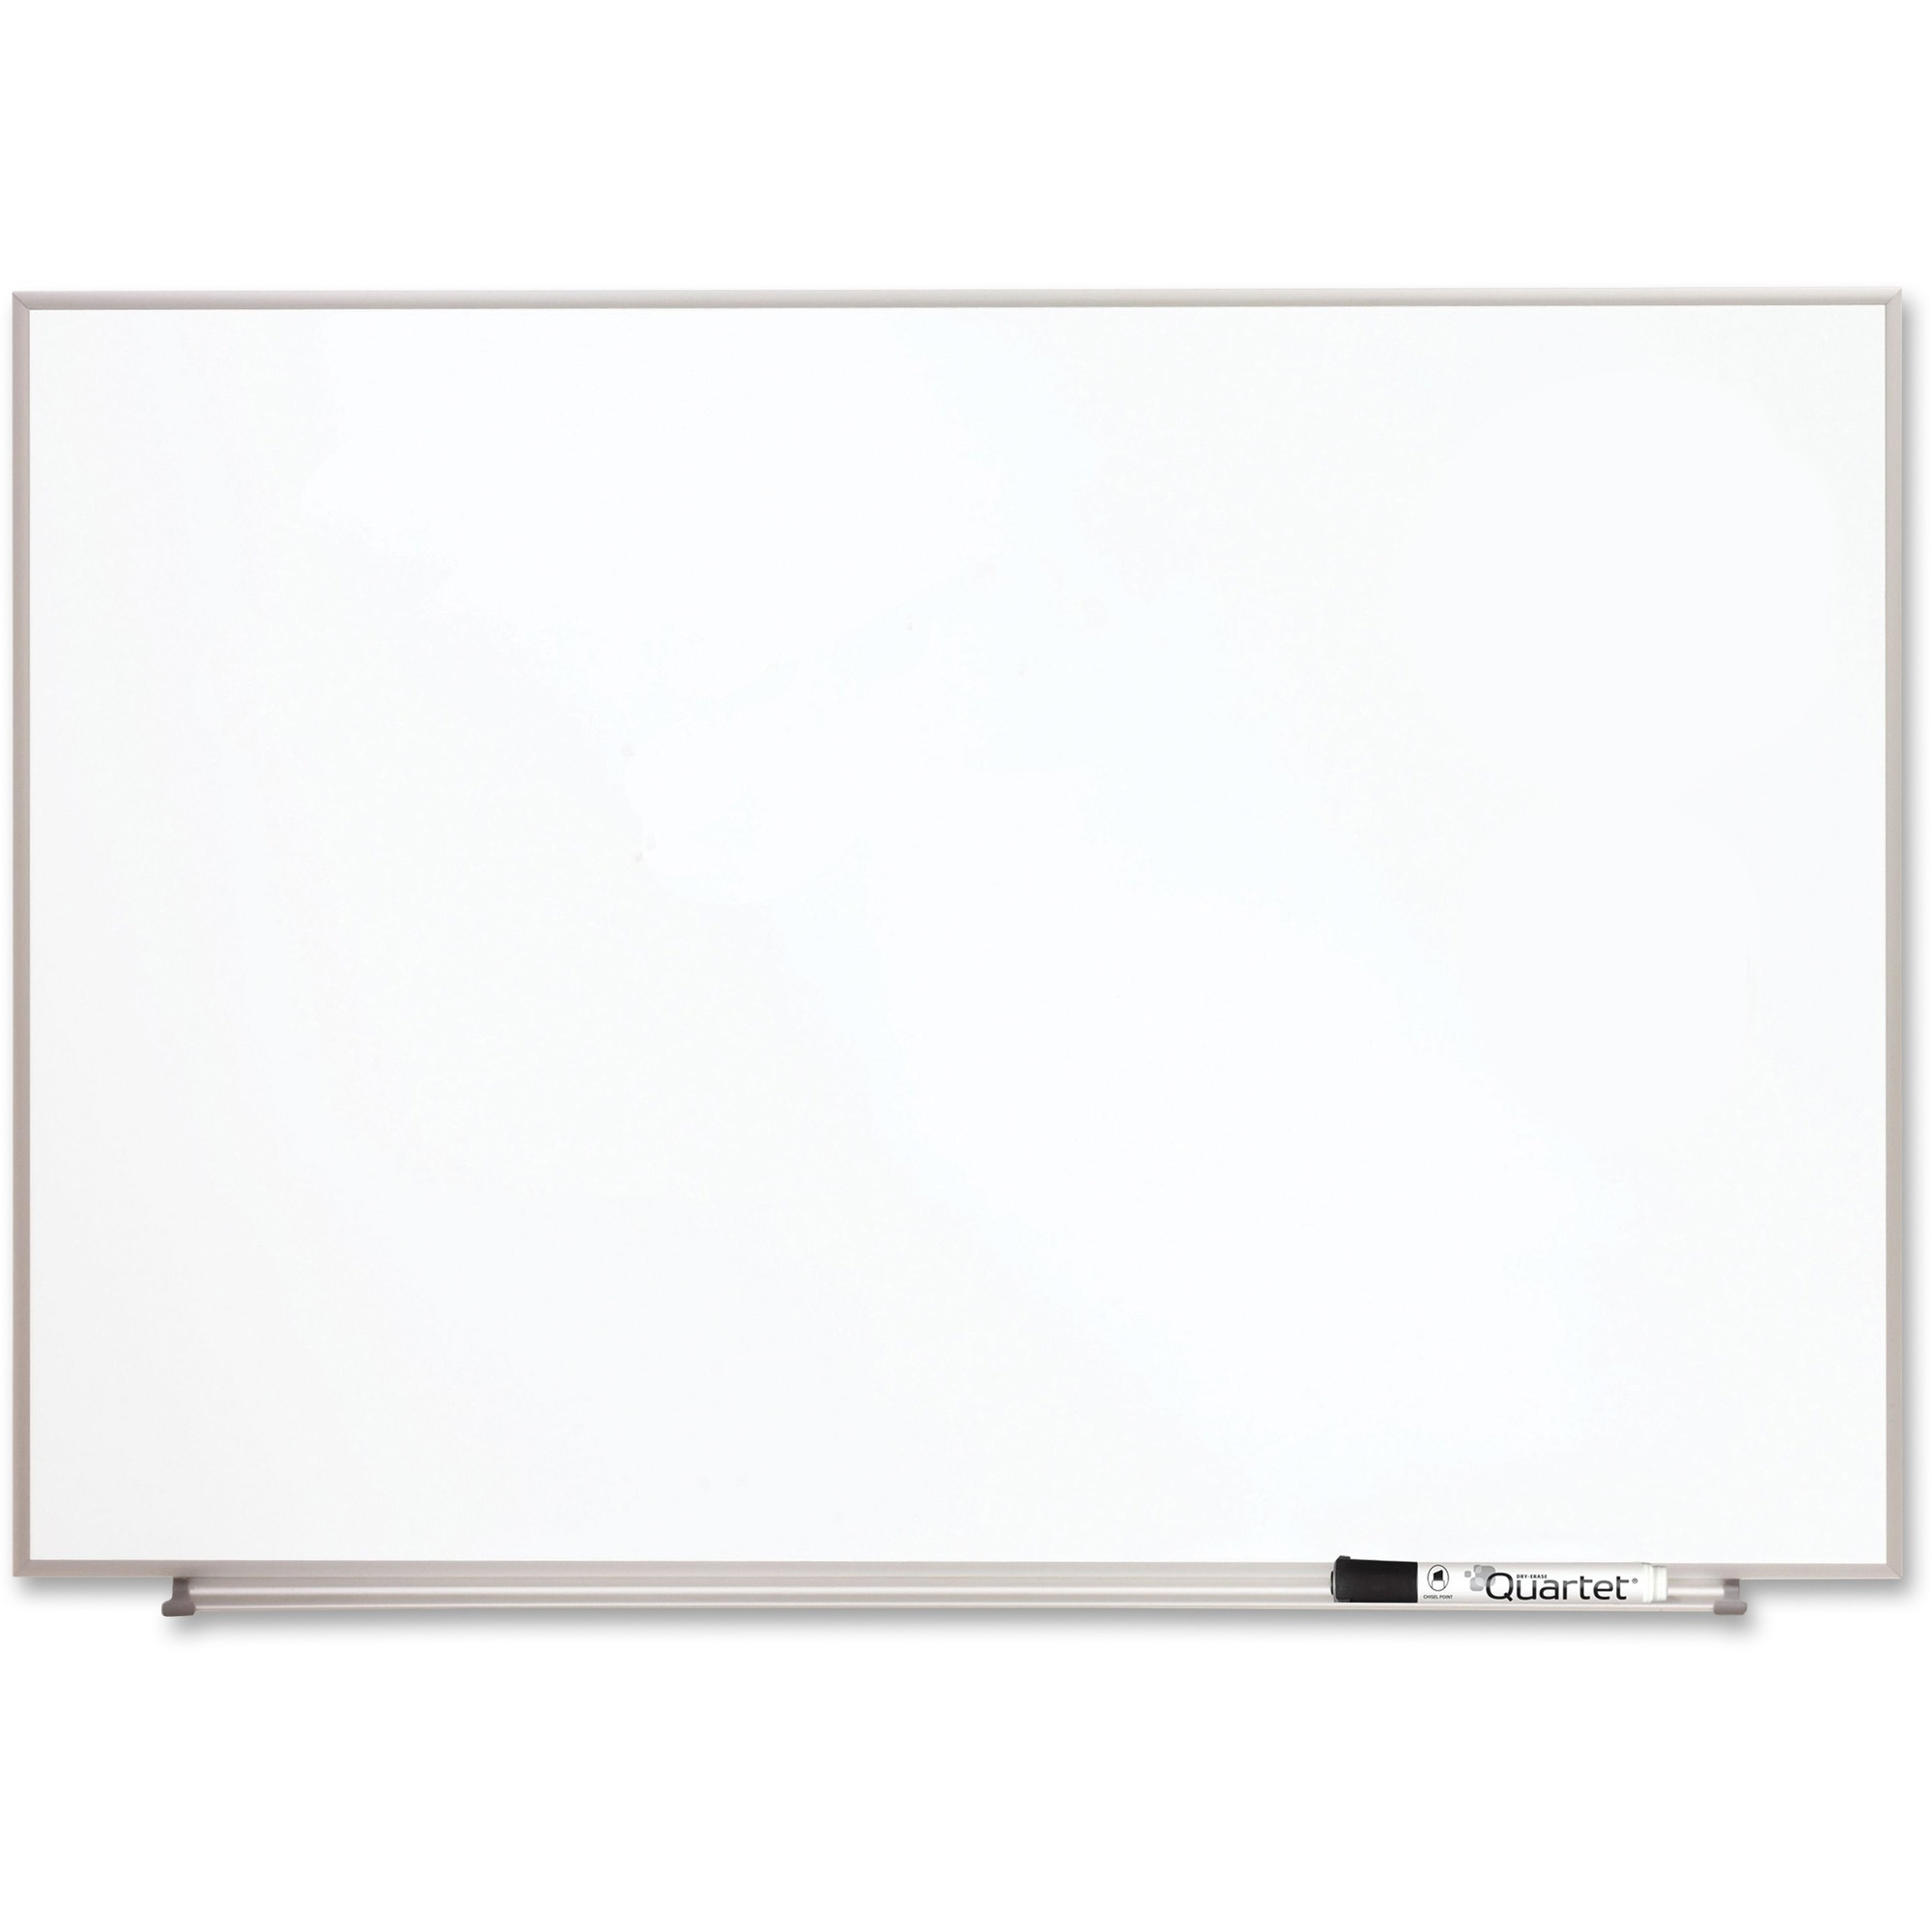 Acco Brands Corporation Quartet Matrix® Magnetic Modular Whiteboards, 34 X 23, Silver Aluminum Frame - 23 Height X 34 Width - White Natural Cork Surface - Silver Aluminum Frame - 1 Each